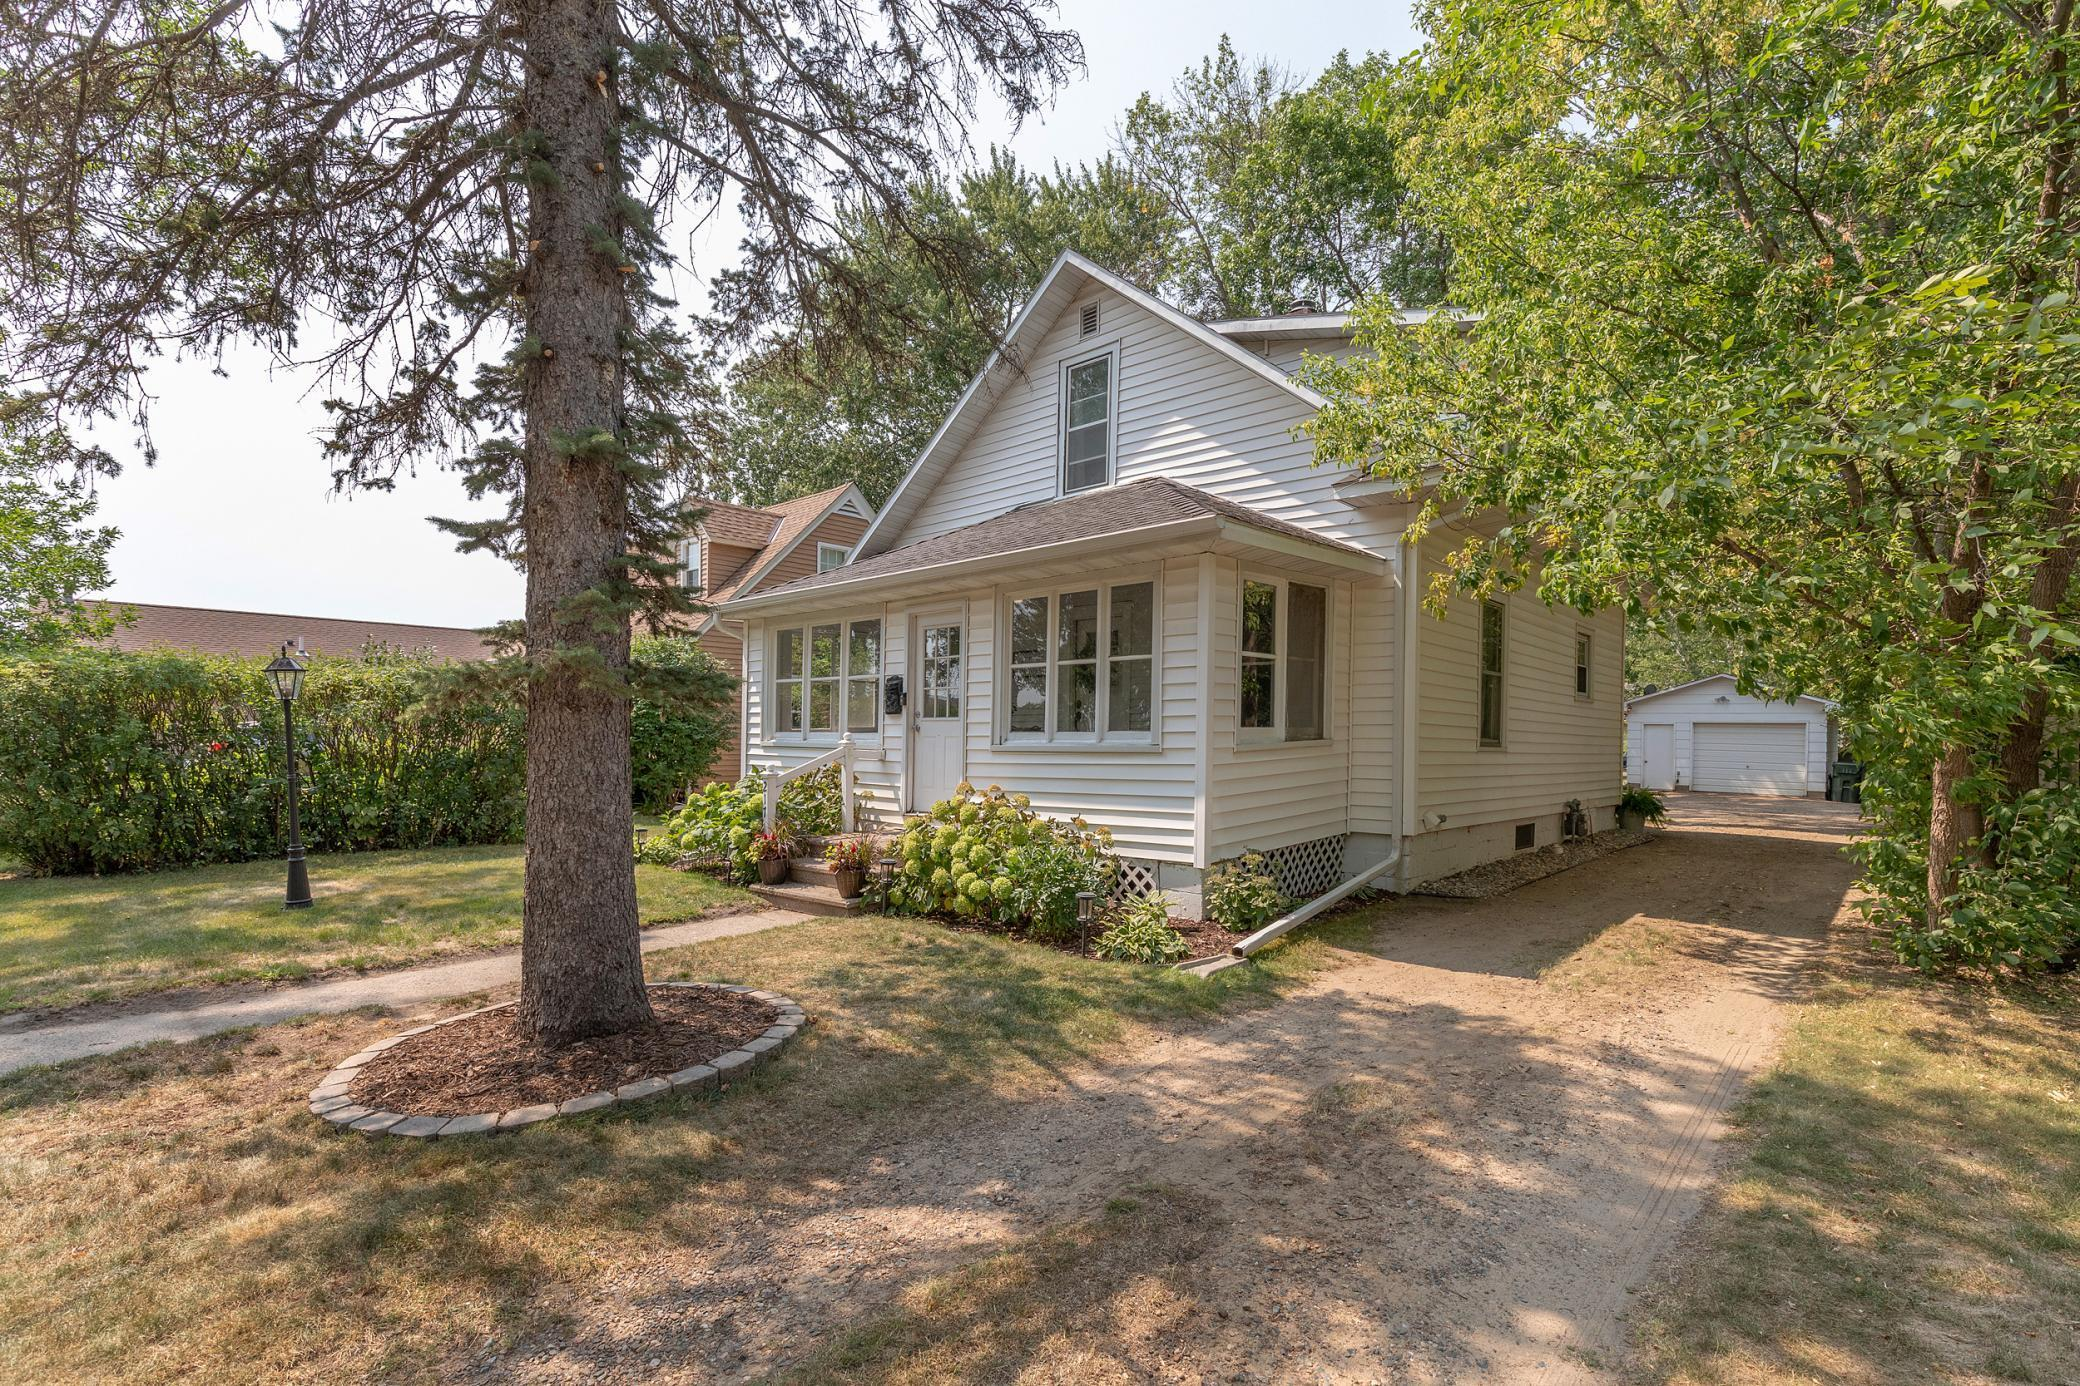 Step into North Brainerd character along with some fantastic features like a new furnace, new AC, newer water heater, tall ceilings, updated paint colors throughout. Enjoy the private backyard, three season porch, and loads of storage in the basement! All you need to do is move in!